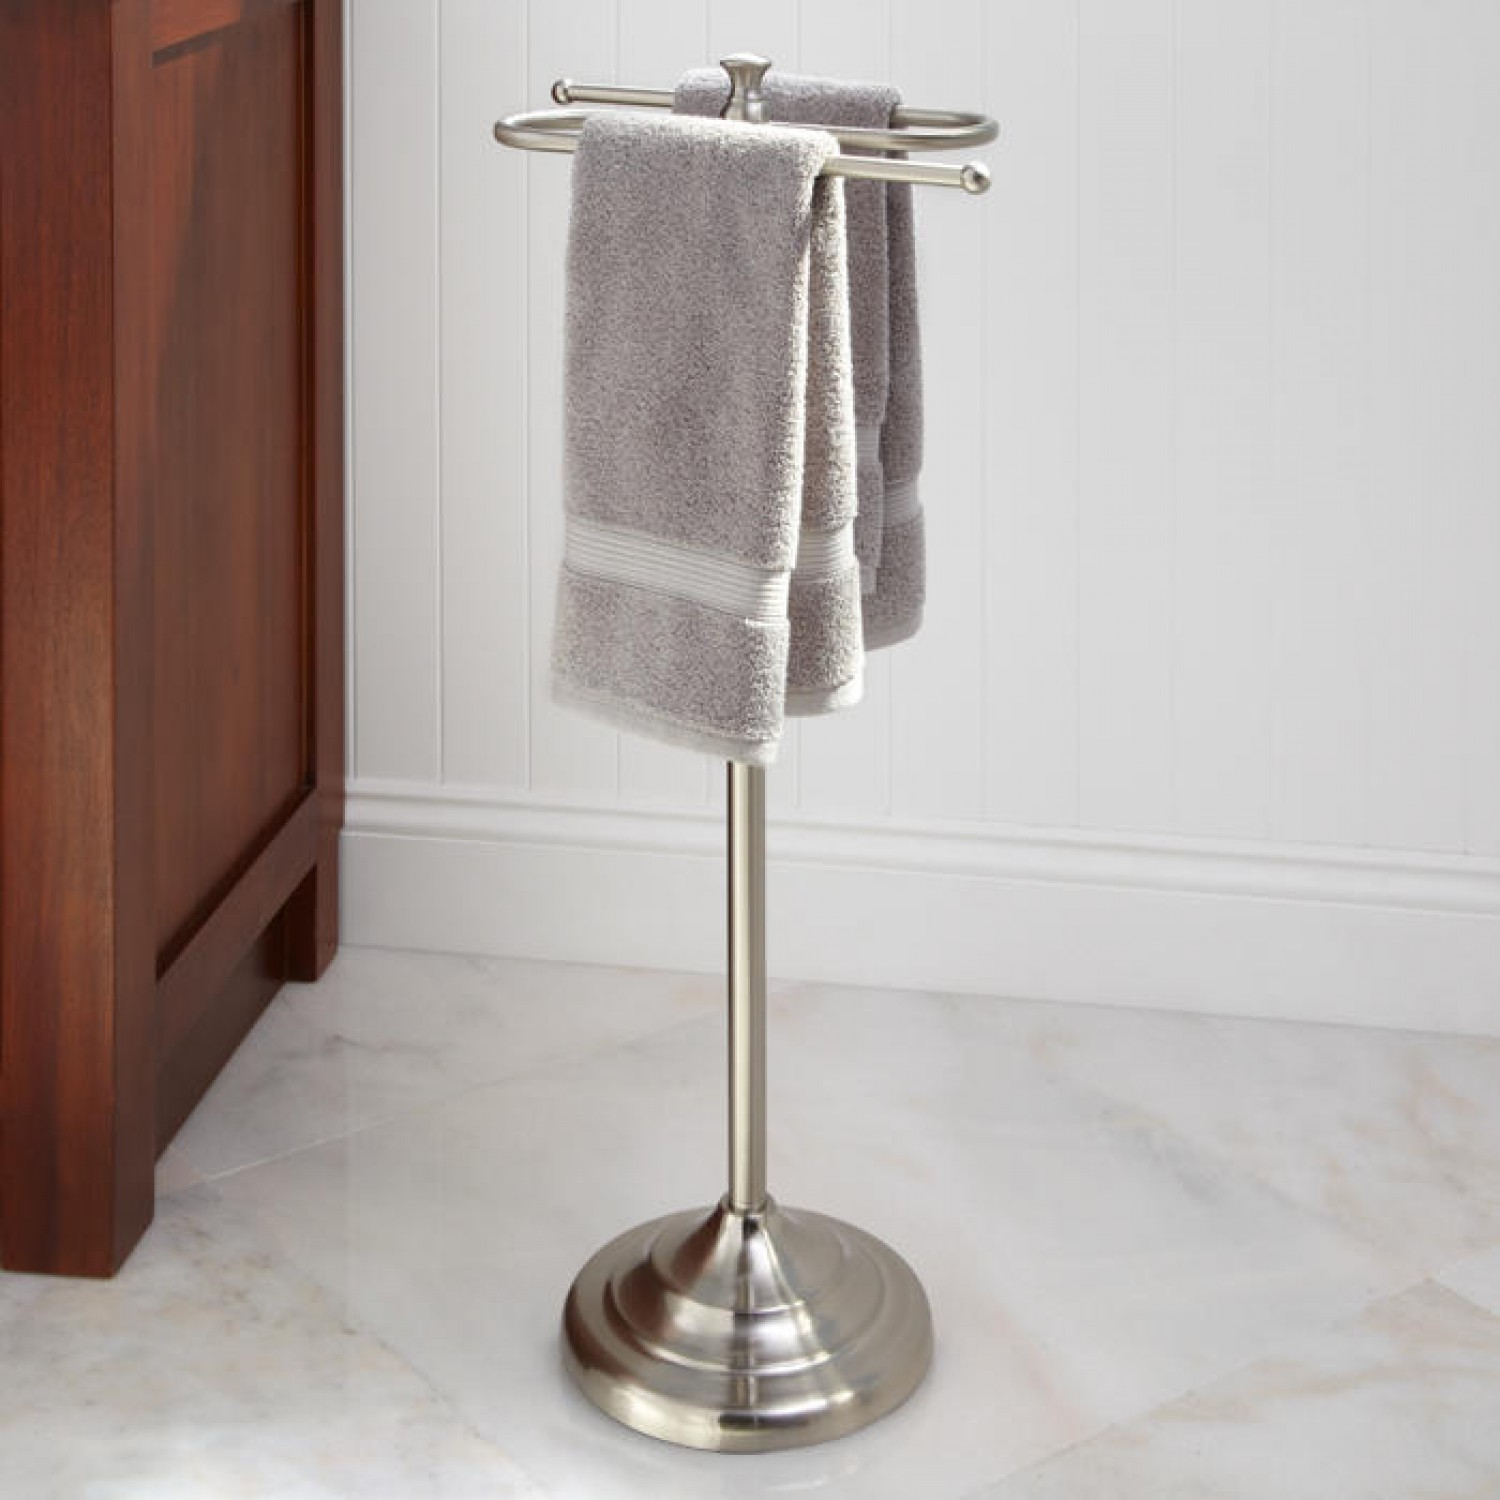 Hand Towel Holder Stainless Steel Made Hand Towel Stand Holder G